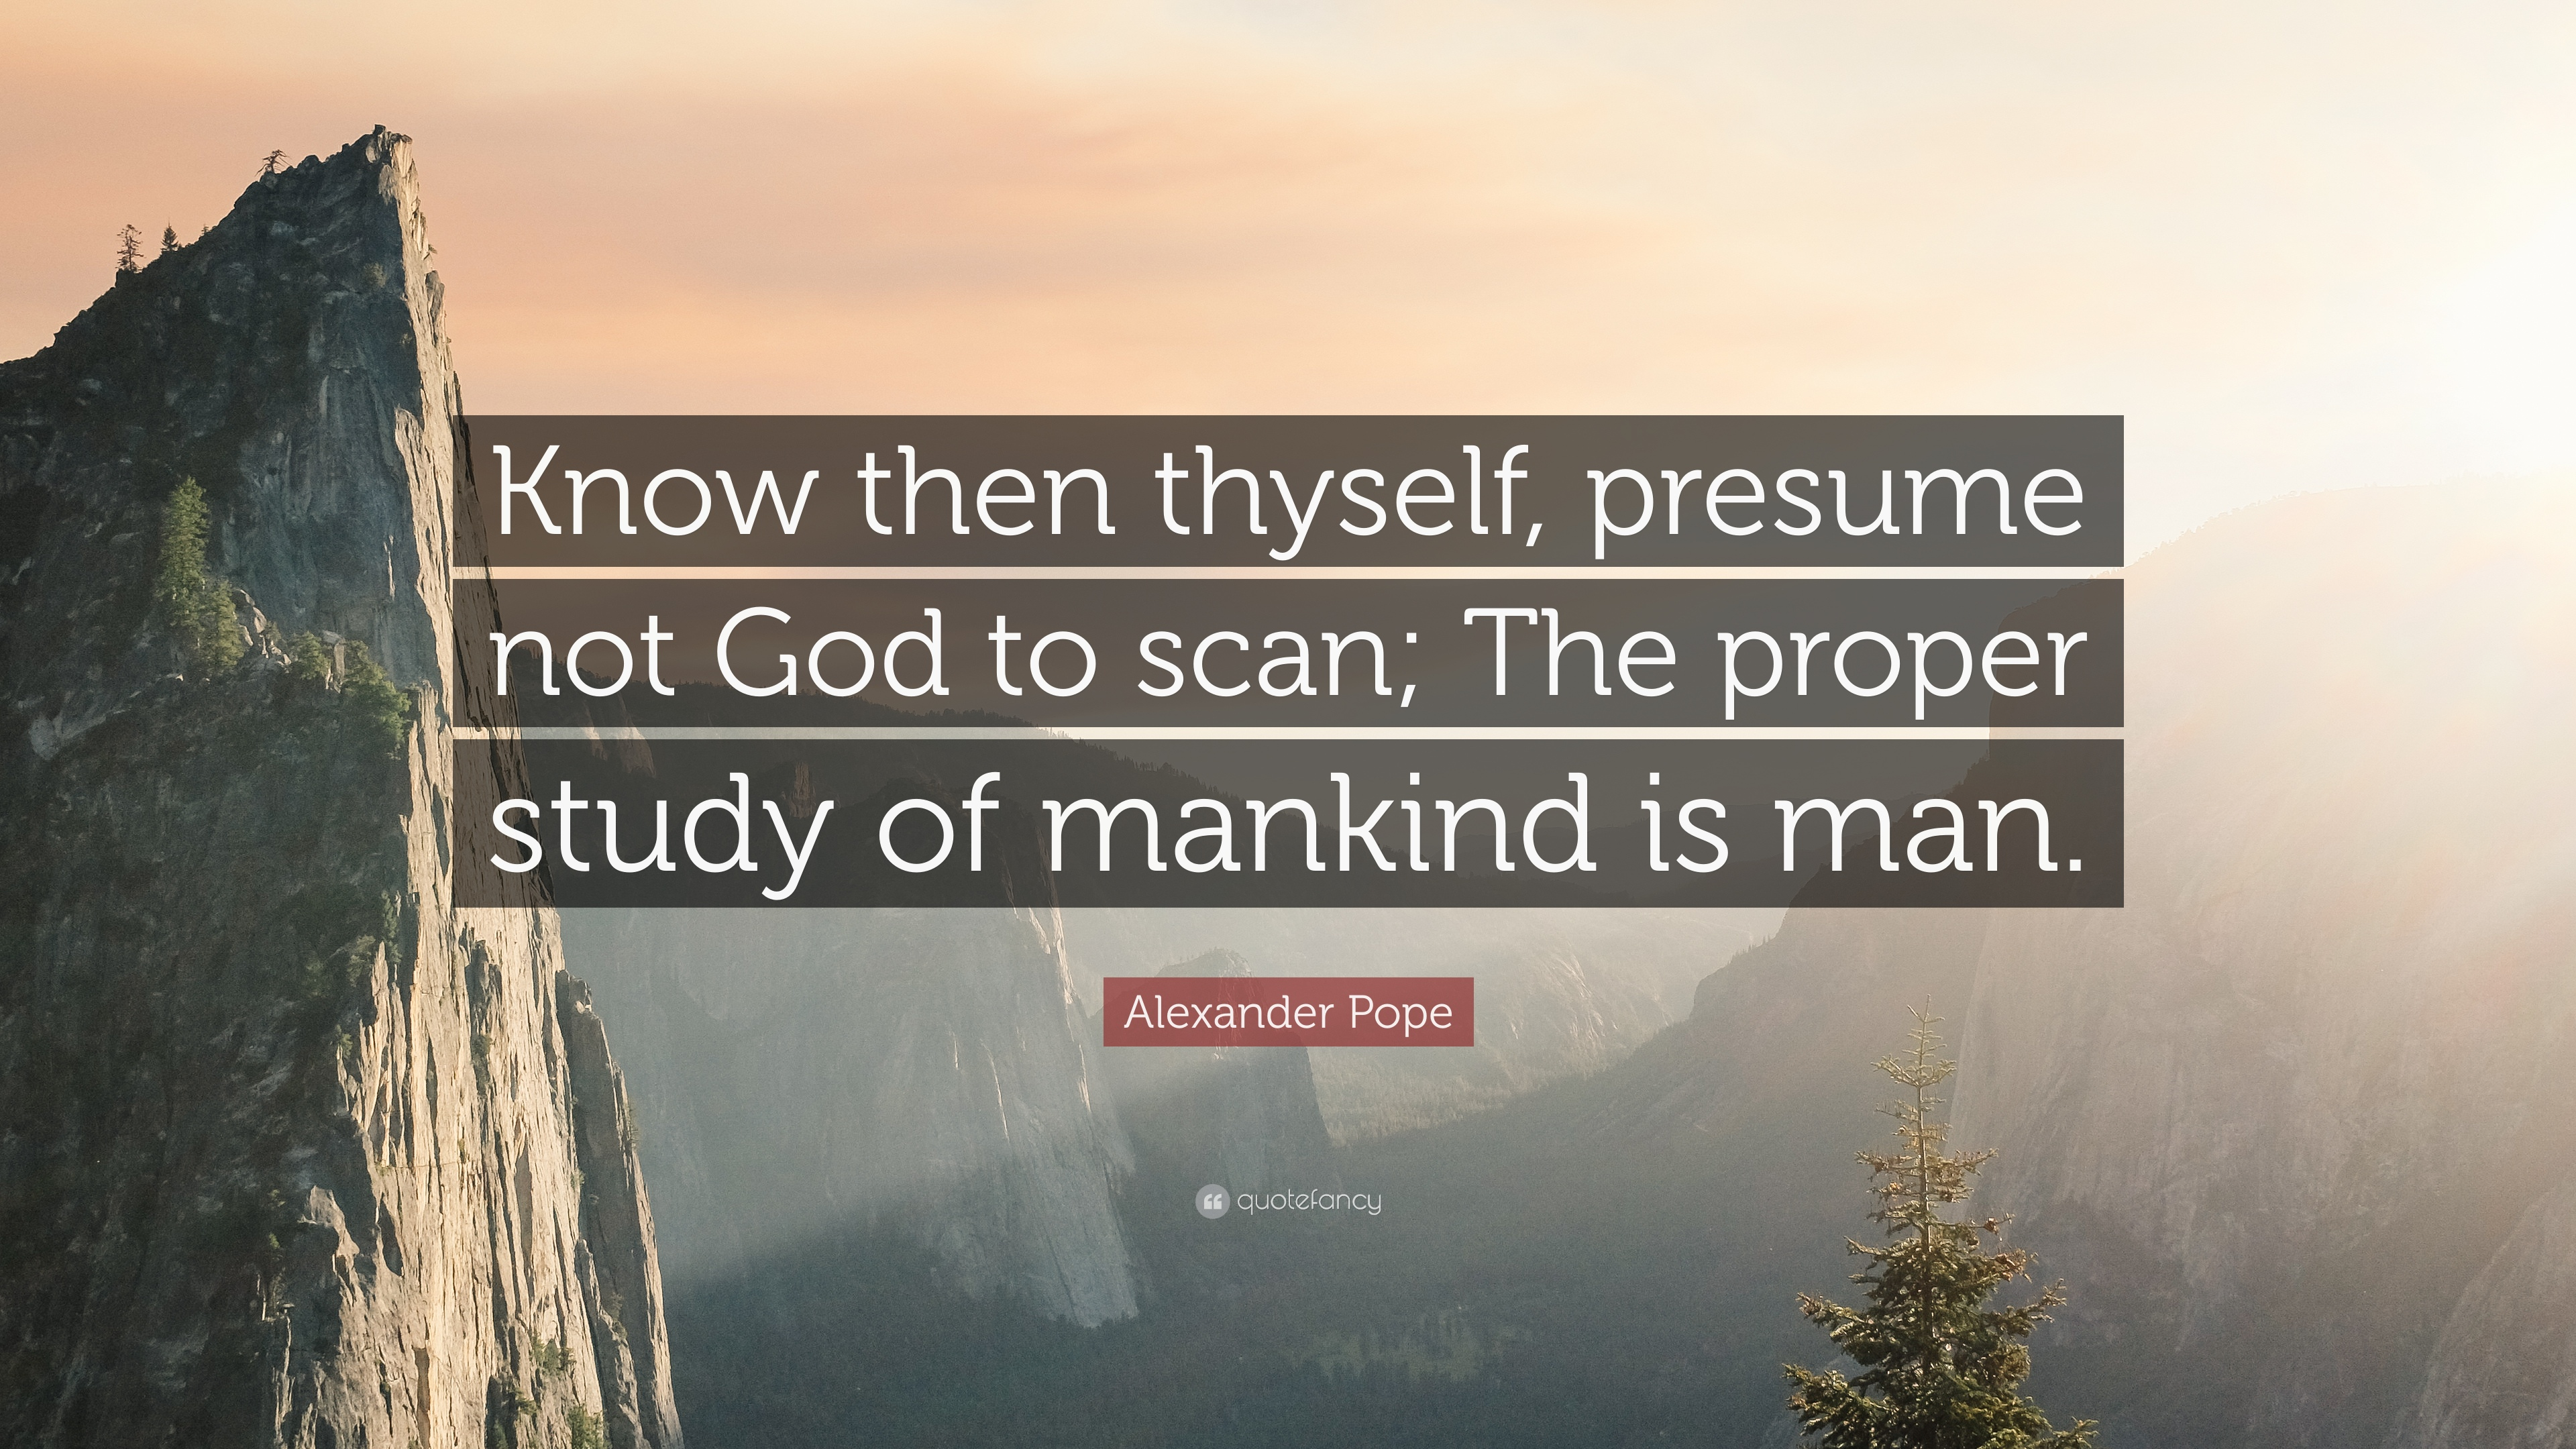 Exceptional Alexander Pope Quote: U201cKnow Then Thyself, Presume Not God To Scan; The For Know Then Thyself Presume Not God To Scan